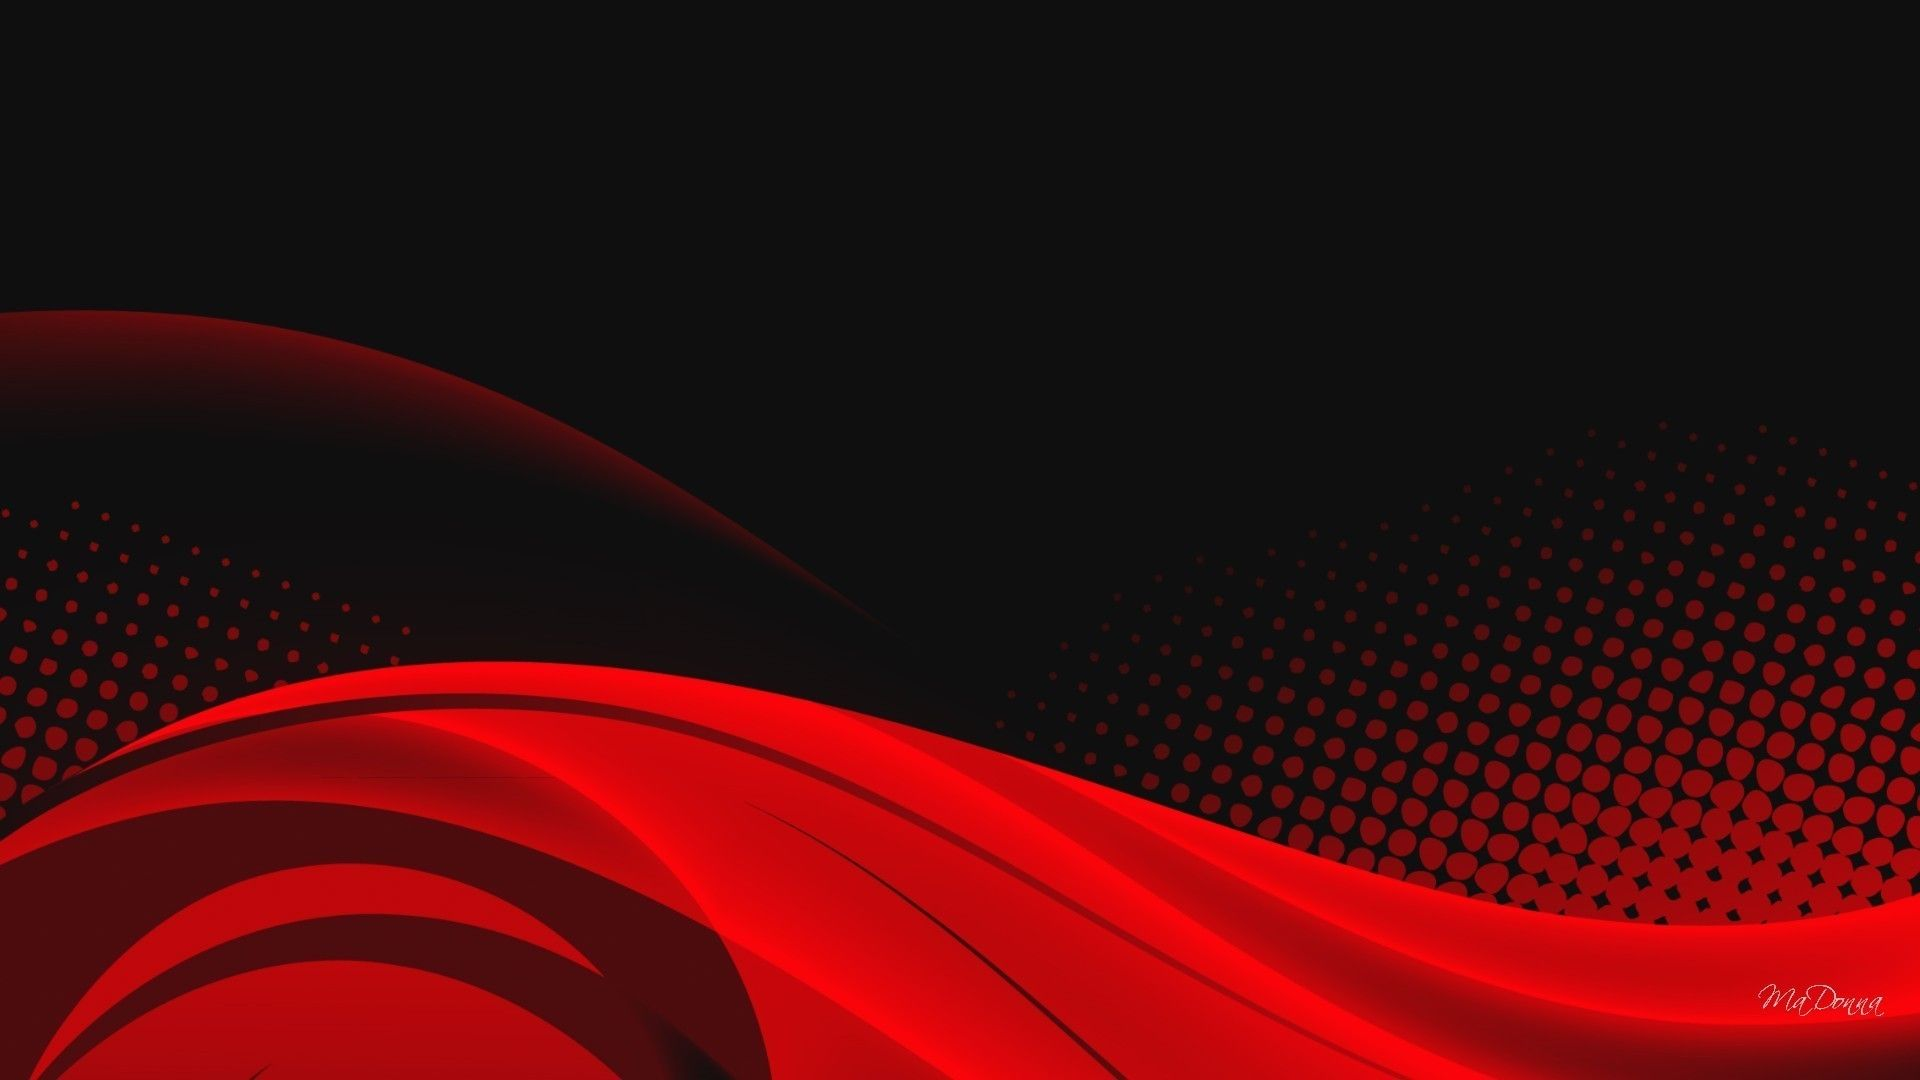 70 Red Swirl Wallpapers On Wallpaperplay Red And Black Wallpaper Red Wallpaper Black Wallpaper